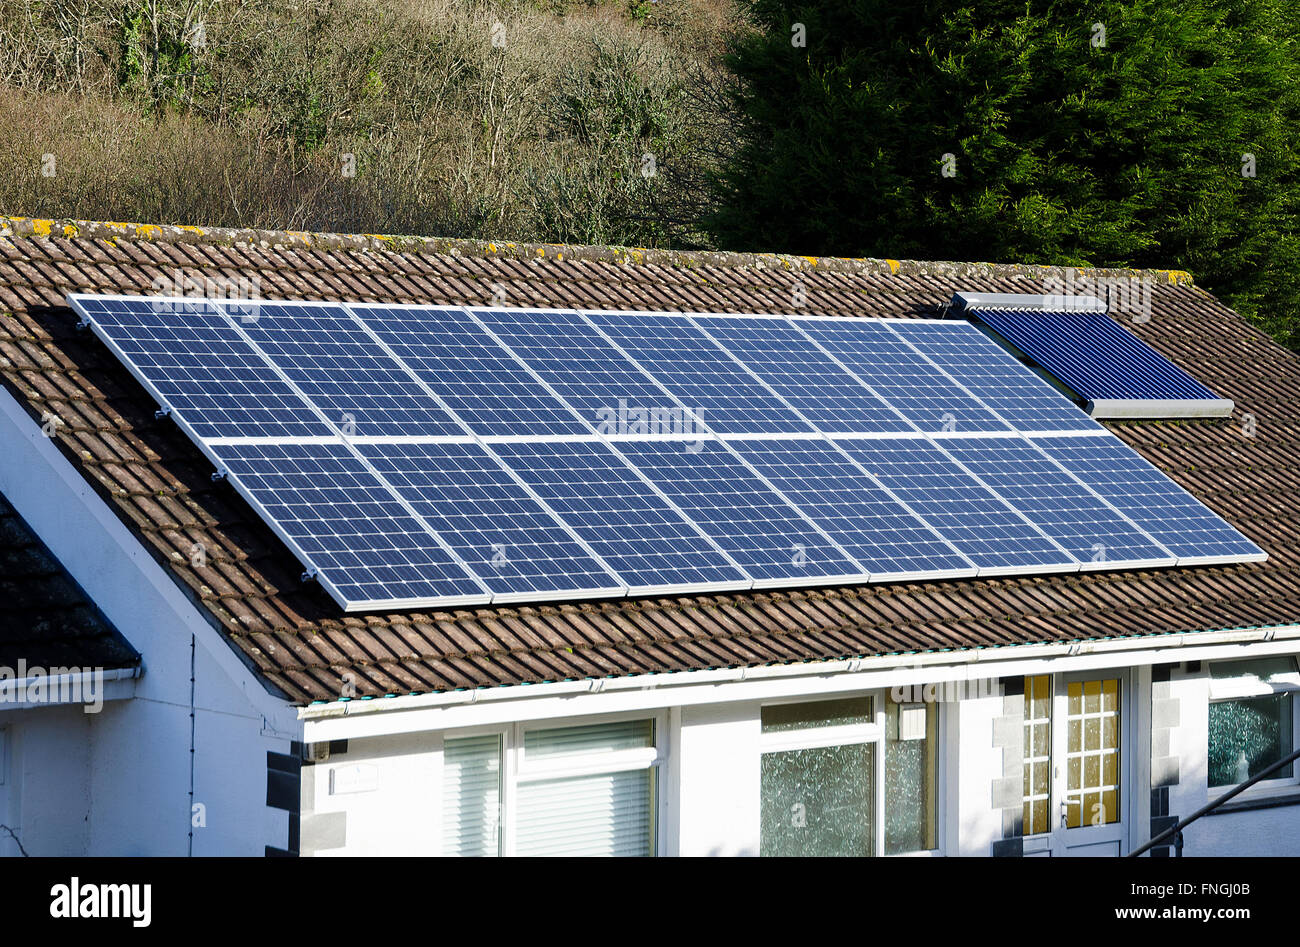 Solar panels on the roof of a bungalow in Cornwall, England, UK - Stock Image